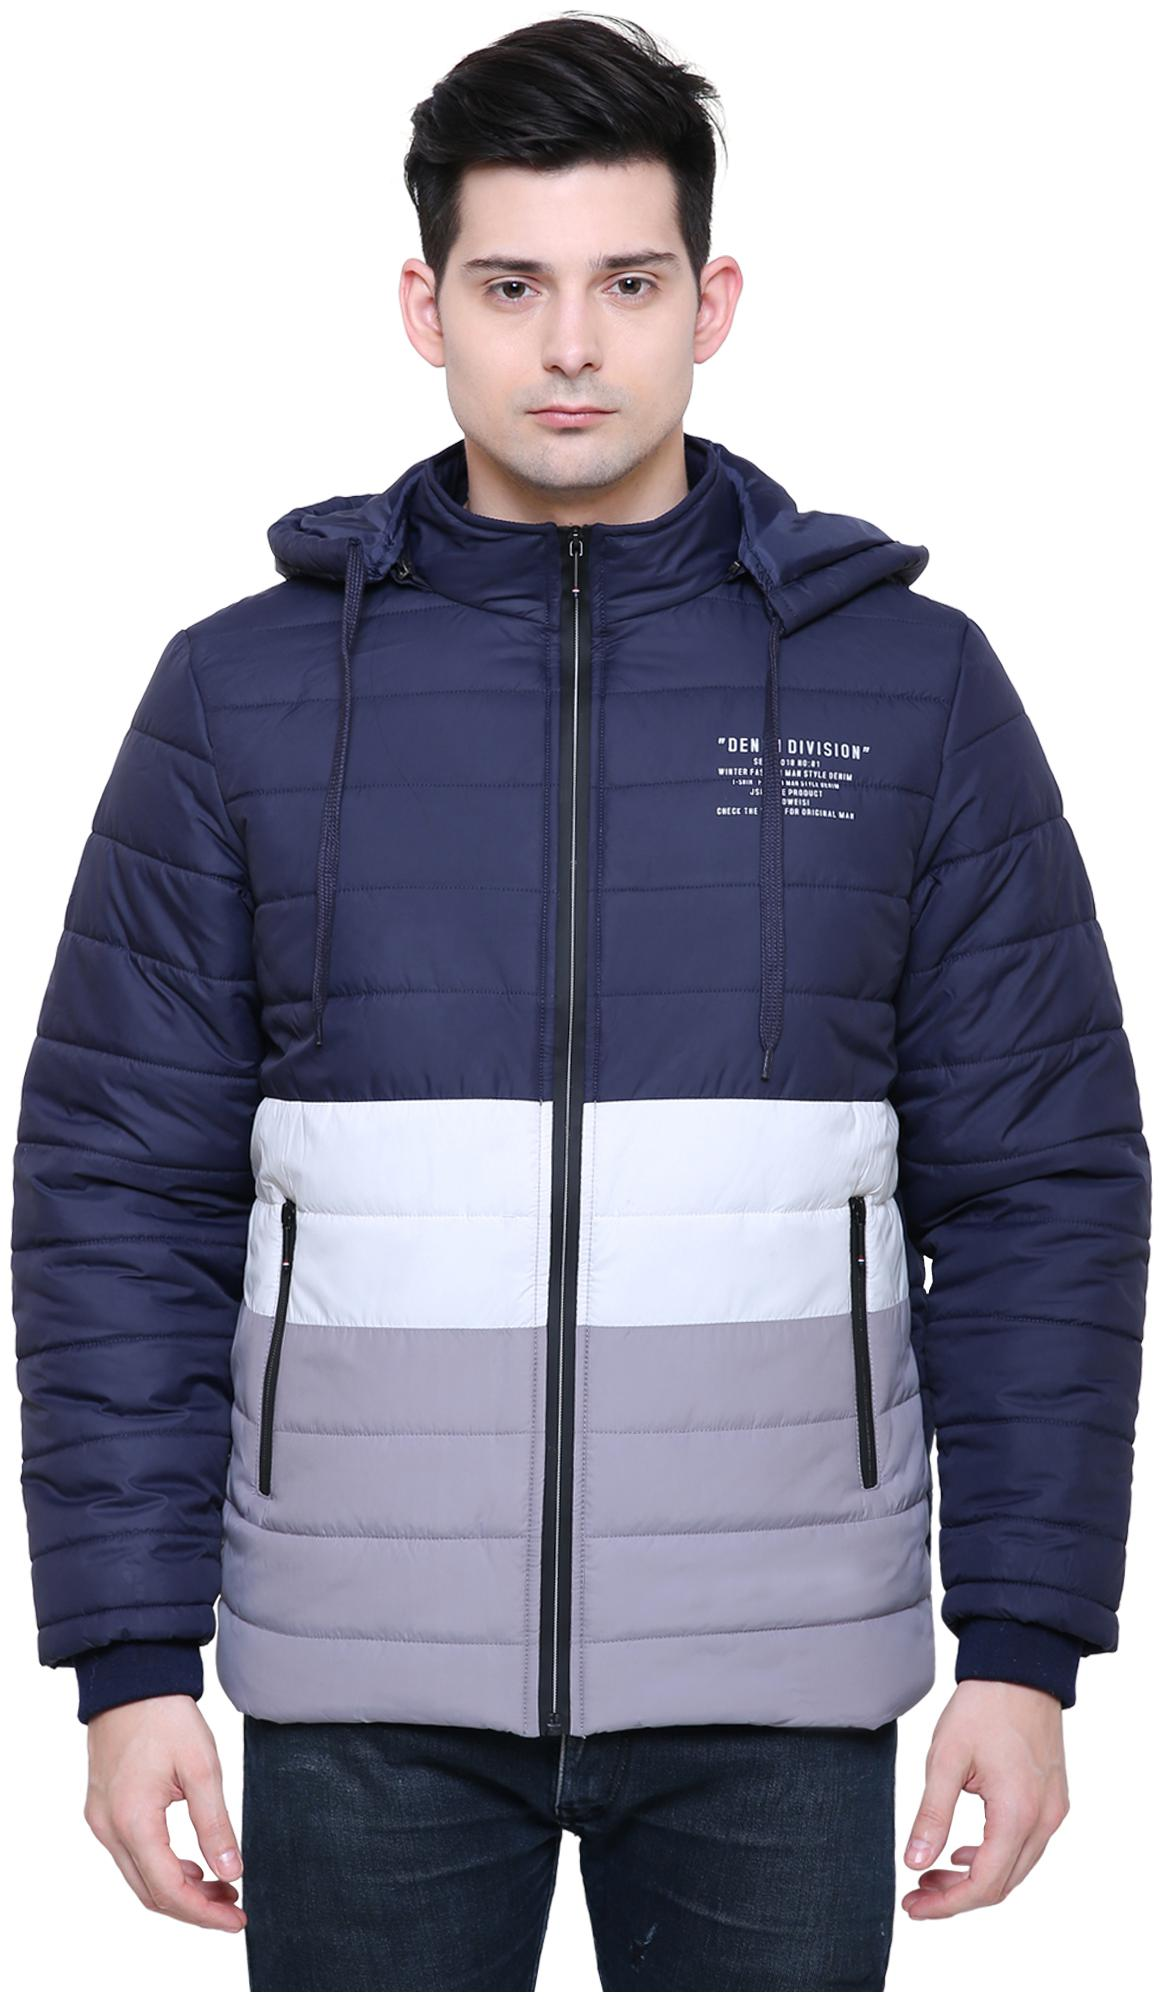 https://assetscdn1.paytm.com/images/catalog/product/A/AP/APPXOHY-FULL-SLXOHY109625593A00779/1567665235422_0..jpg